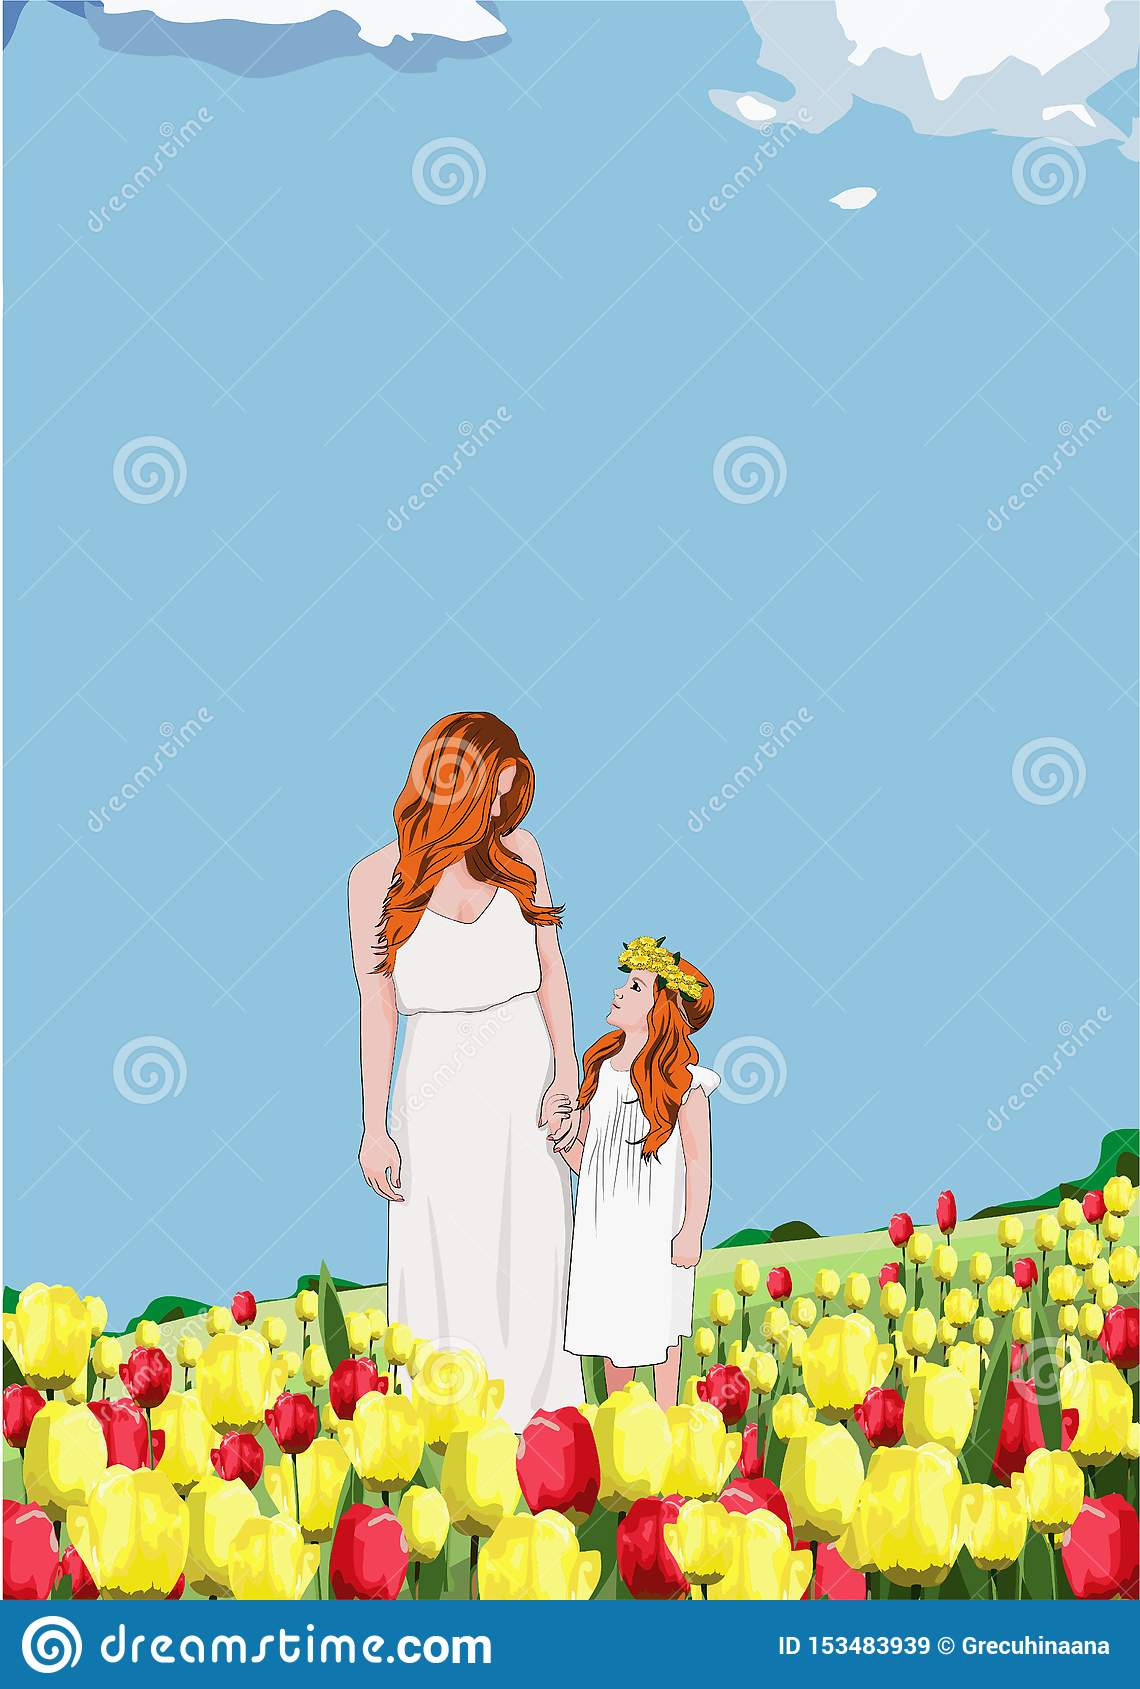 Happy mother and daughter on a spring afternoon among a field of tulips